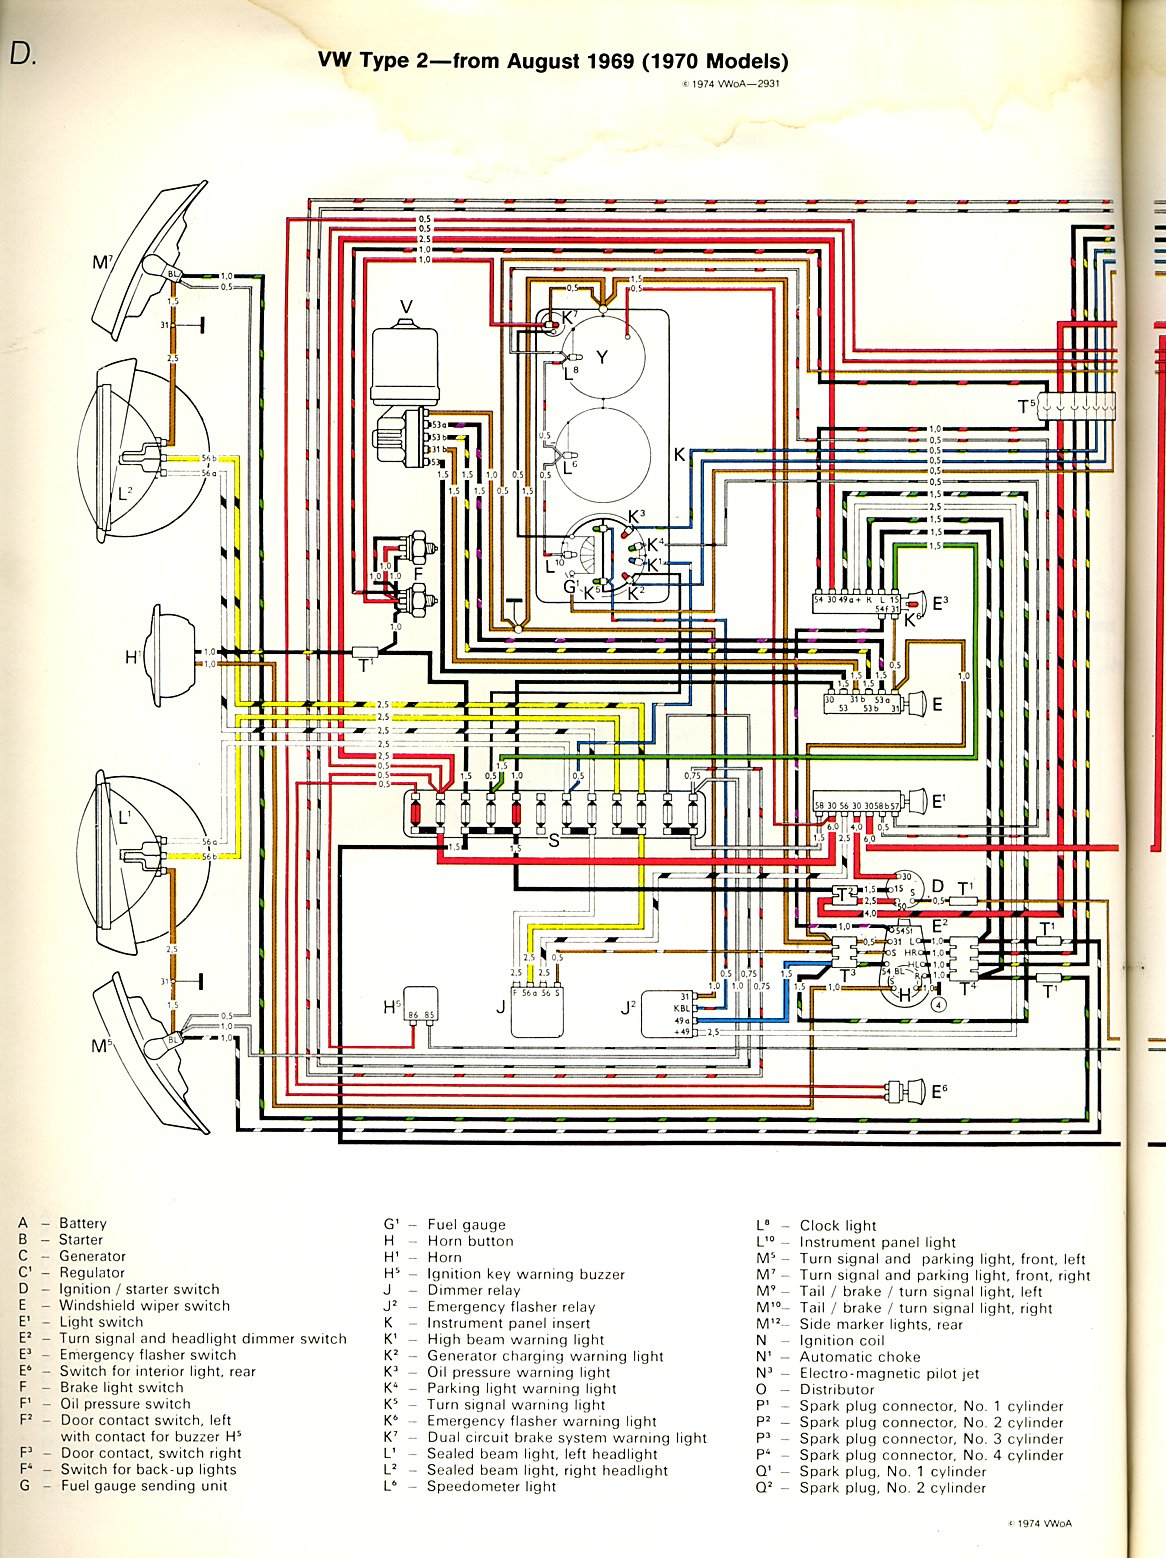 baybus_70a man bus wiring diagram wiring diagram will be a thing \u2022